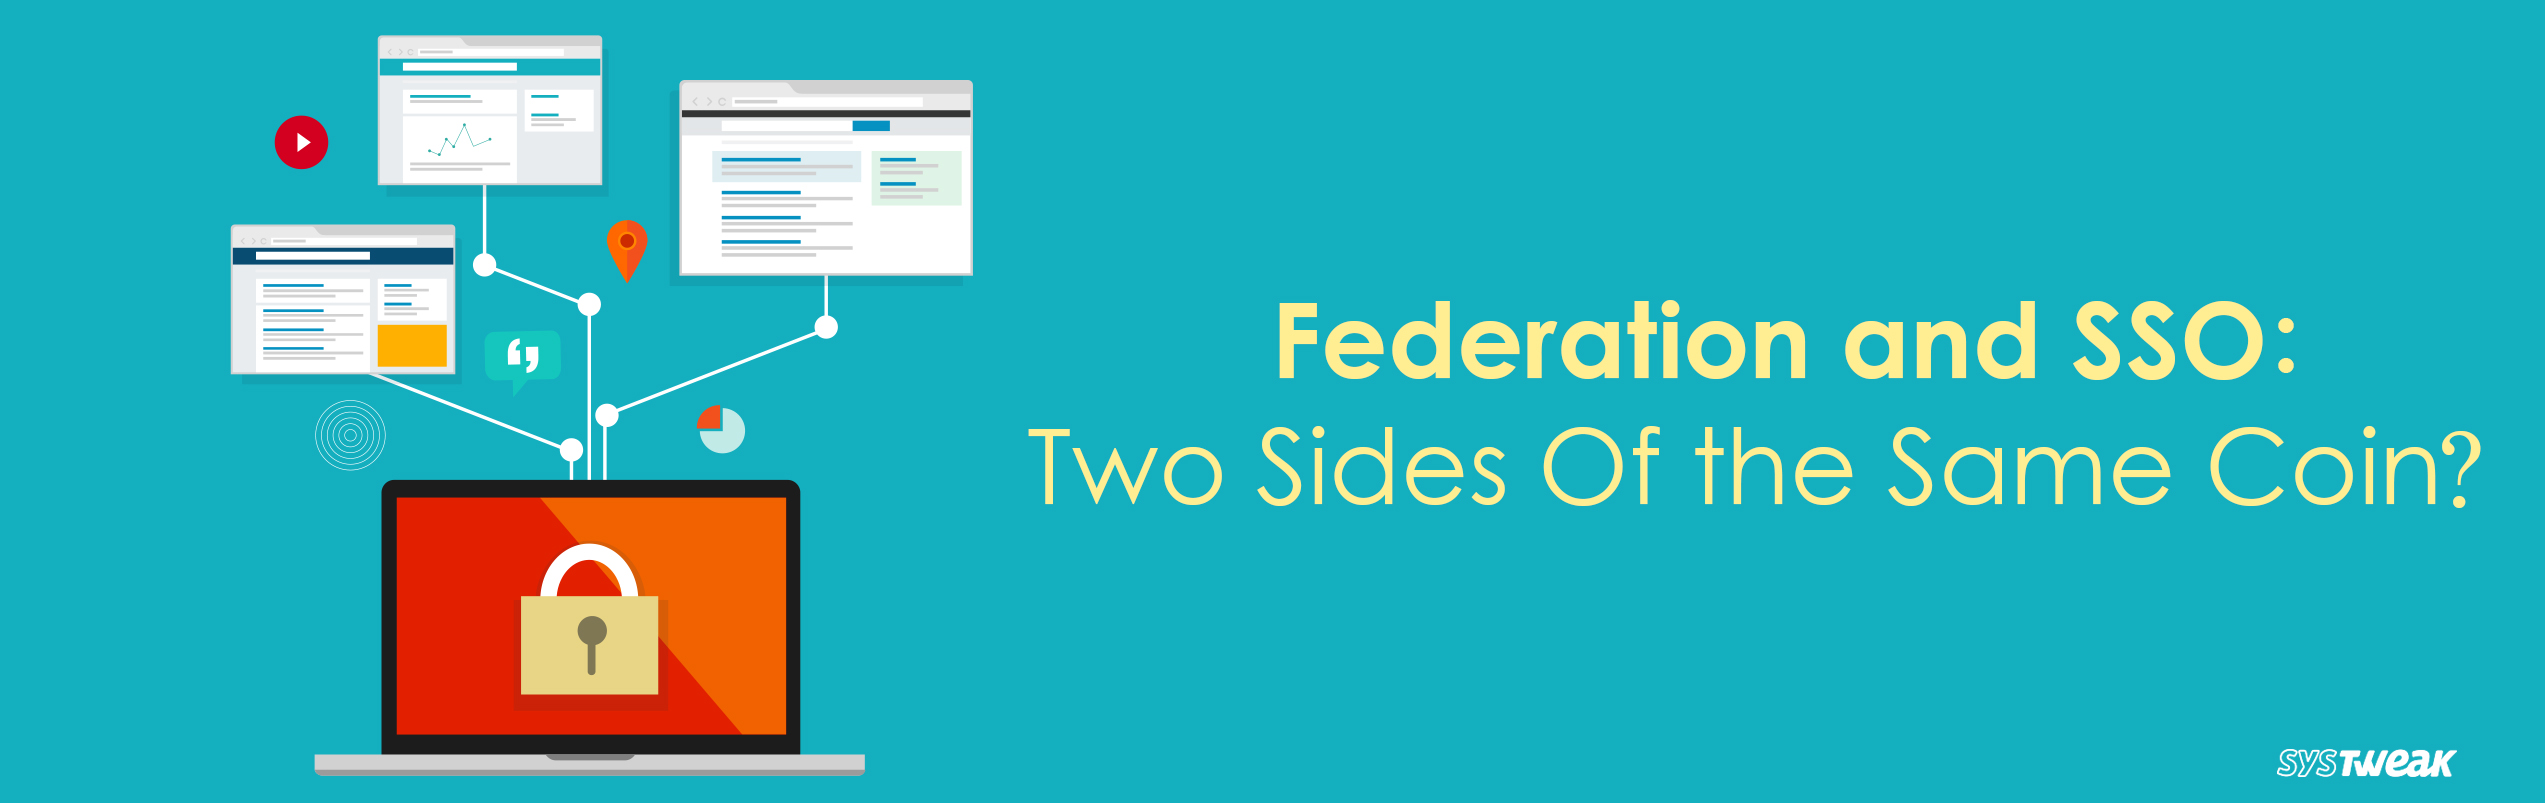 Are SSO and Federation The Same Technique?